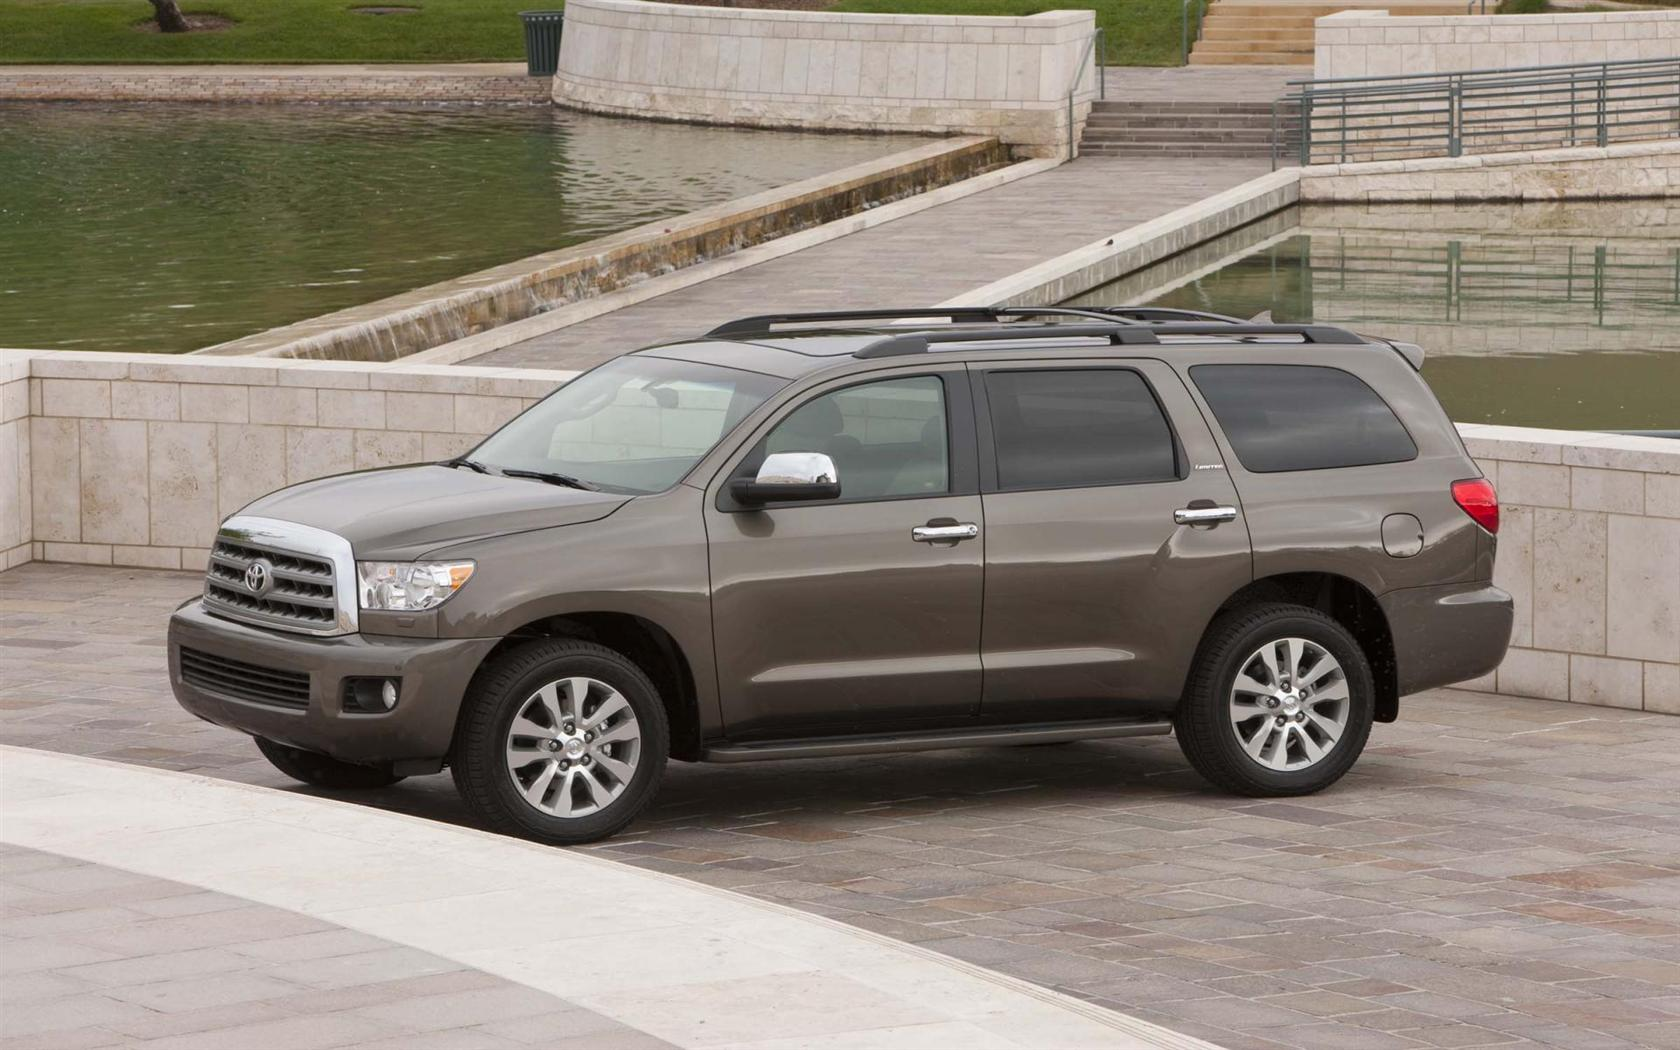 2012 toyota sequoia images photo 2012 toyota sequoia truck image 028. Black Bedroom Furniture Sets. Home Design Ideas